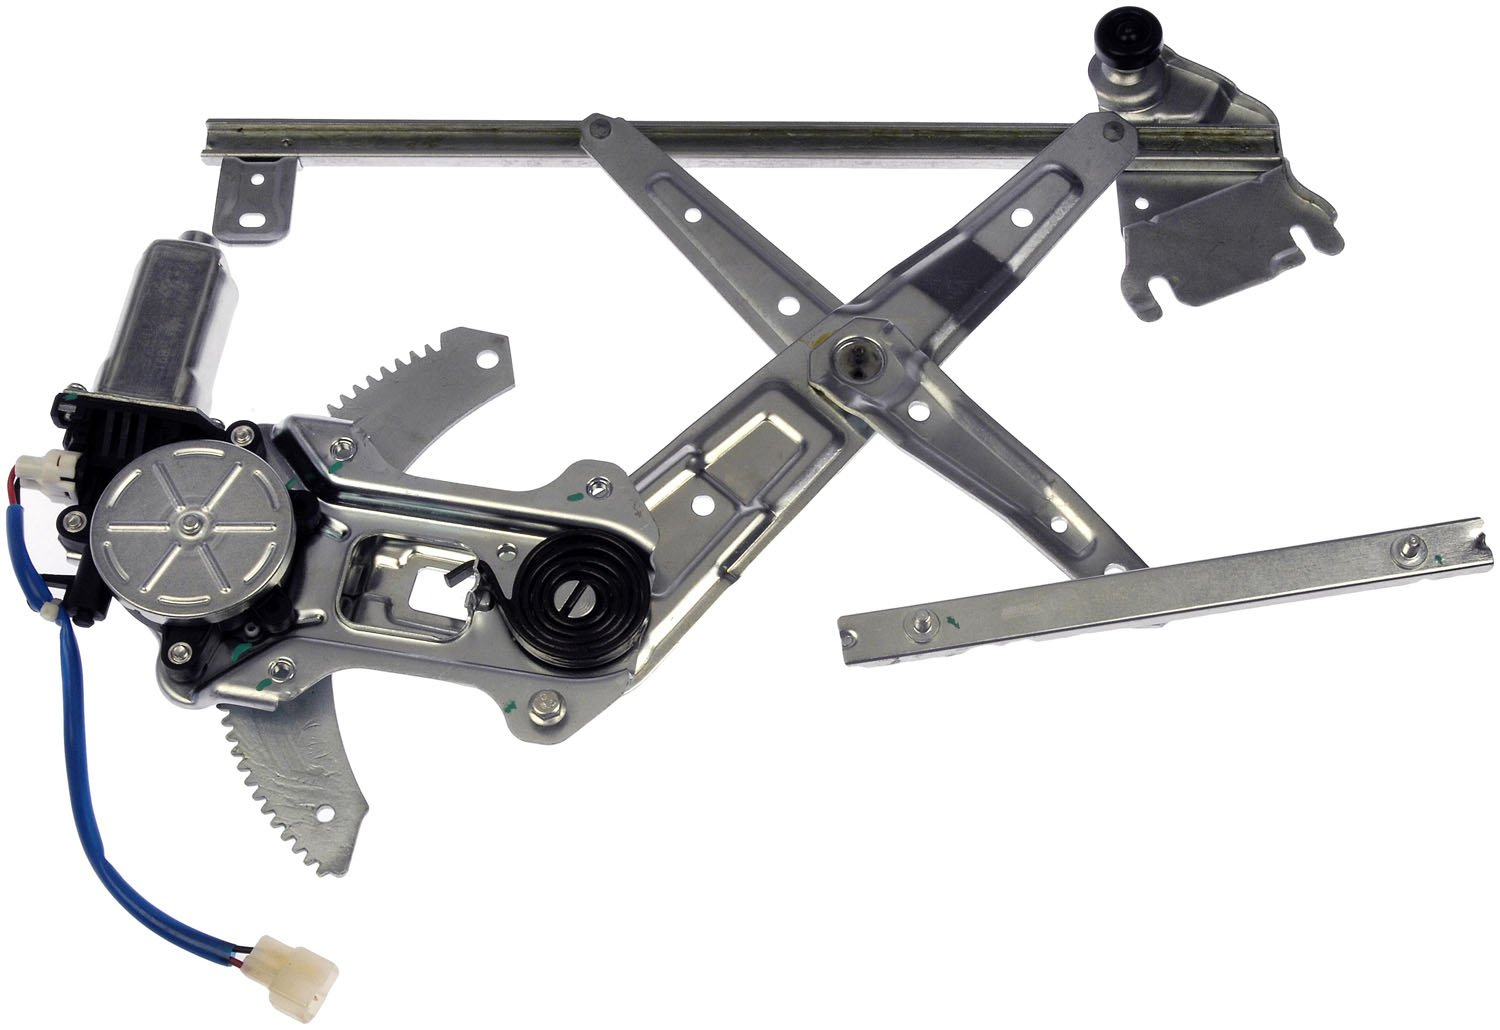 Dorman 741-003 Subaru Forester Front Driver Side Window Regulator with Motor by Dorman